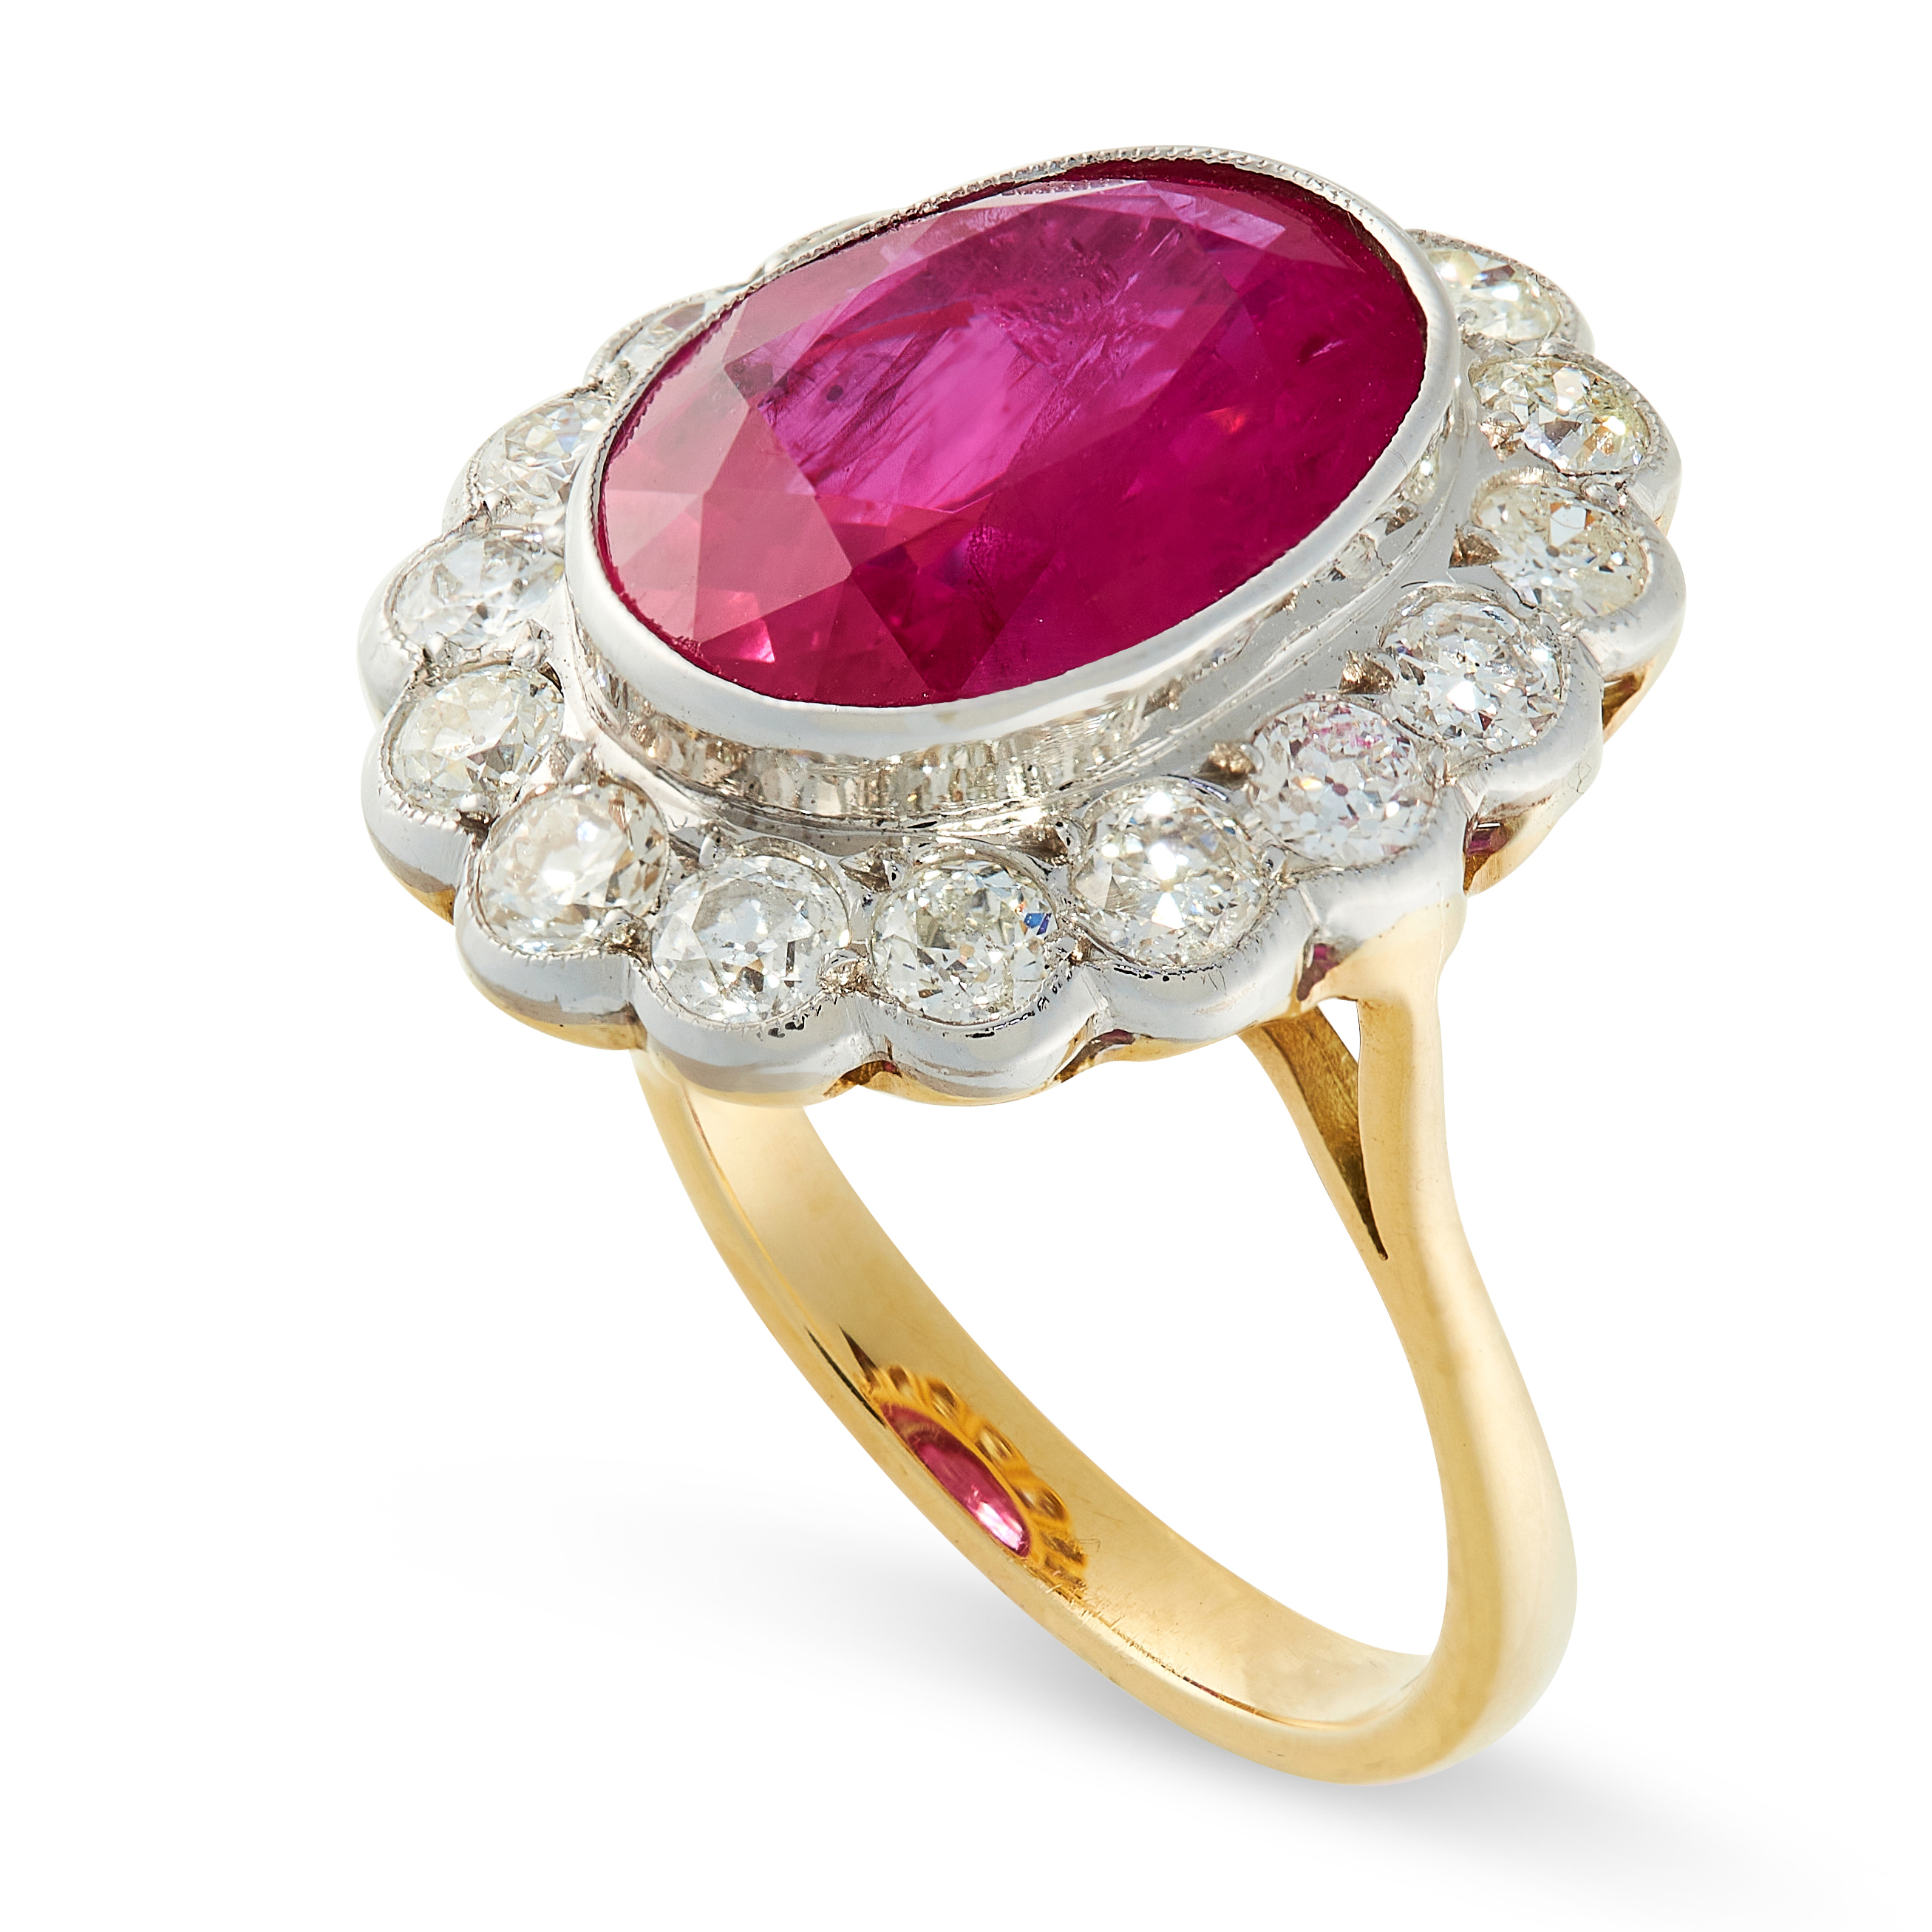 A RUBY AND DIAMOND RING in 18ct yellow gold, set with an oval cut ruby of 6.02 carats, within a - Image 2 of 2